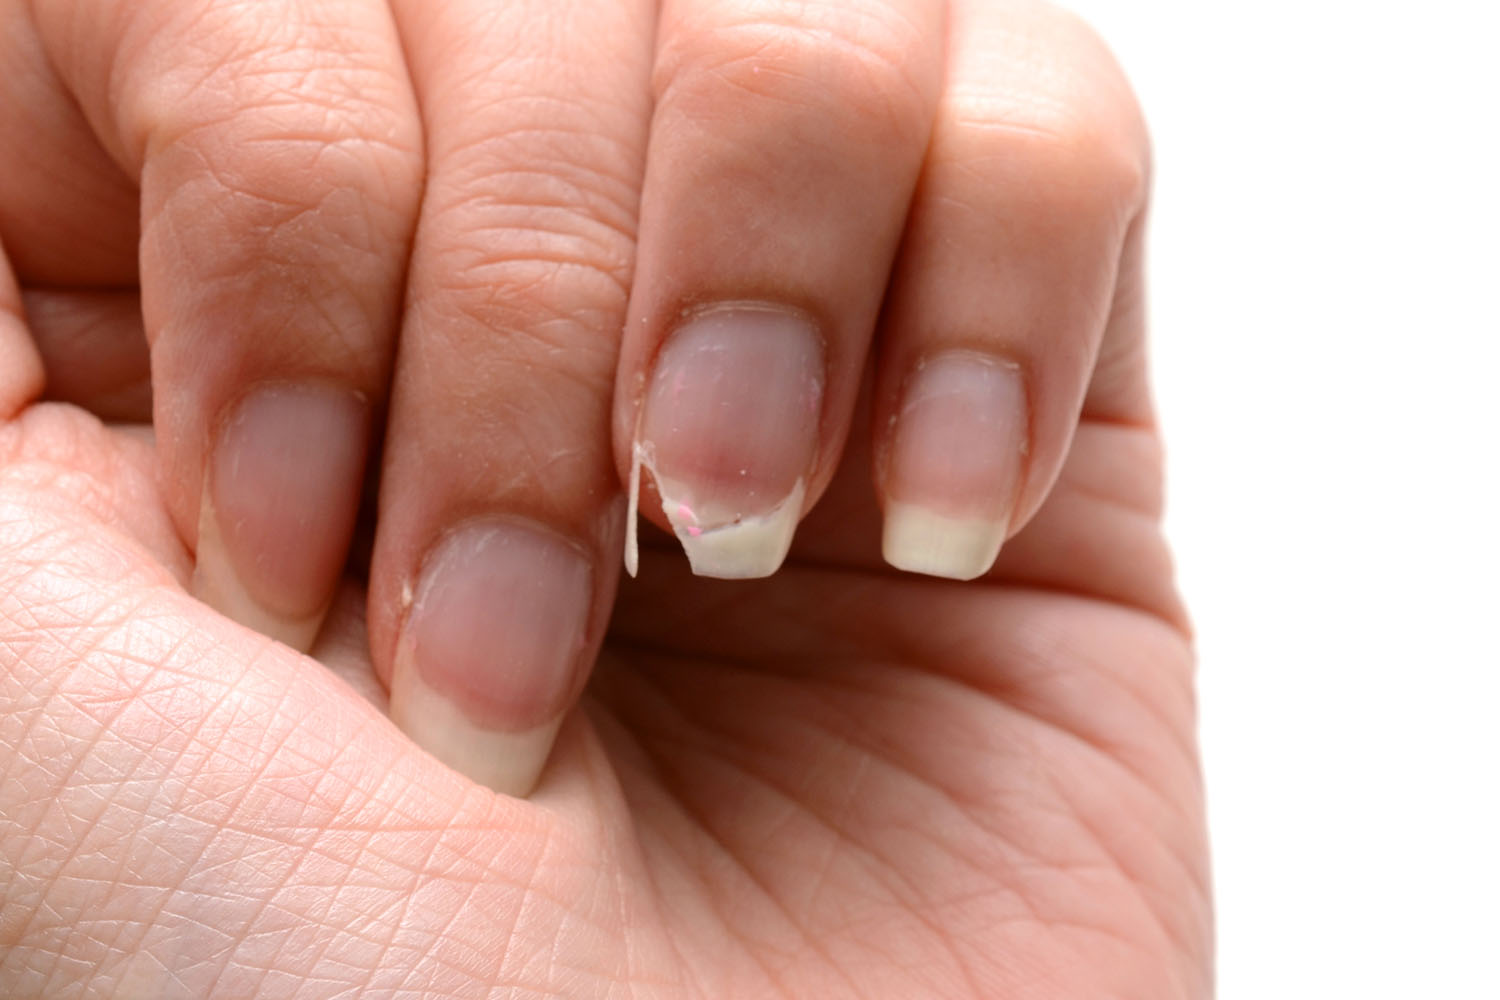 How To Fix A Broken Nail In 5 Minutes Better Homes And Gardens